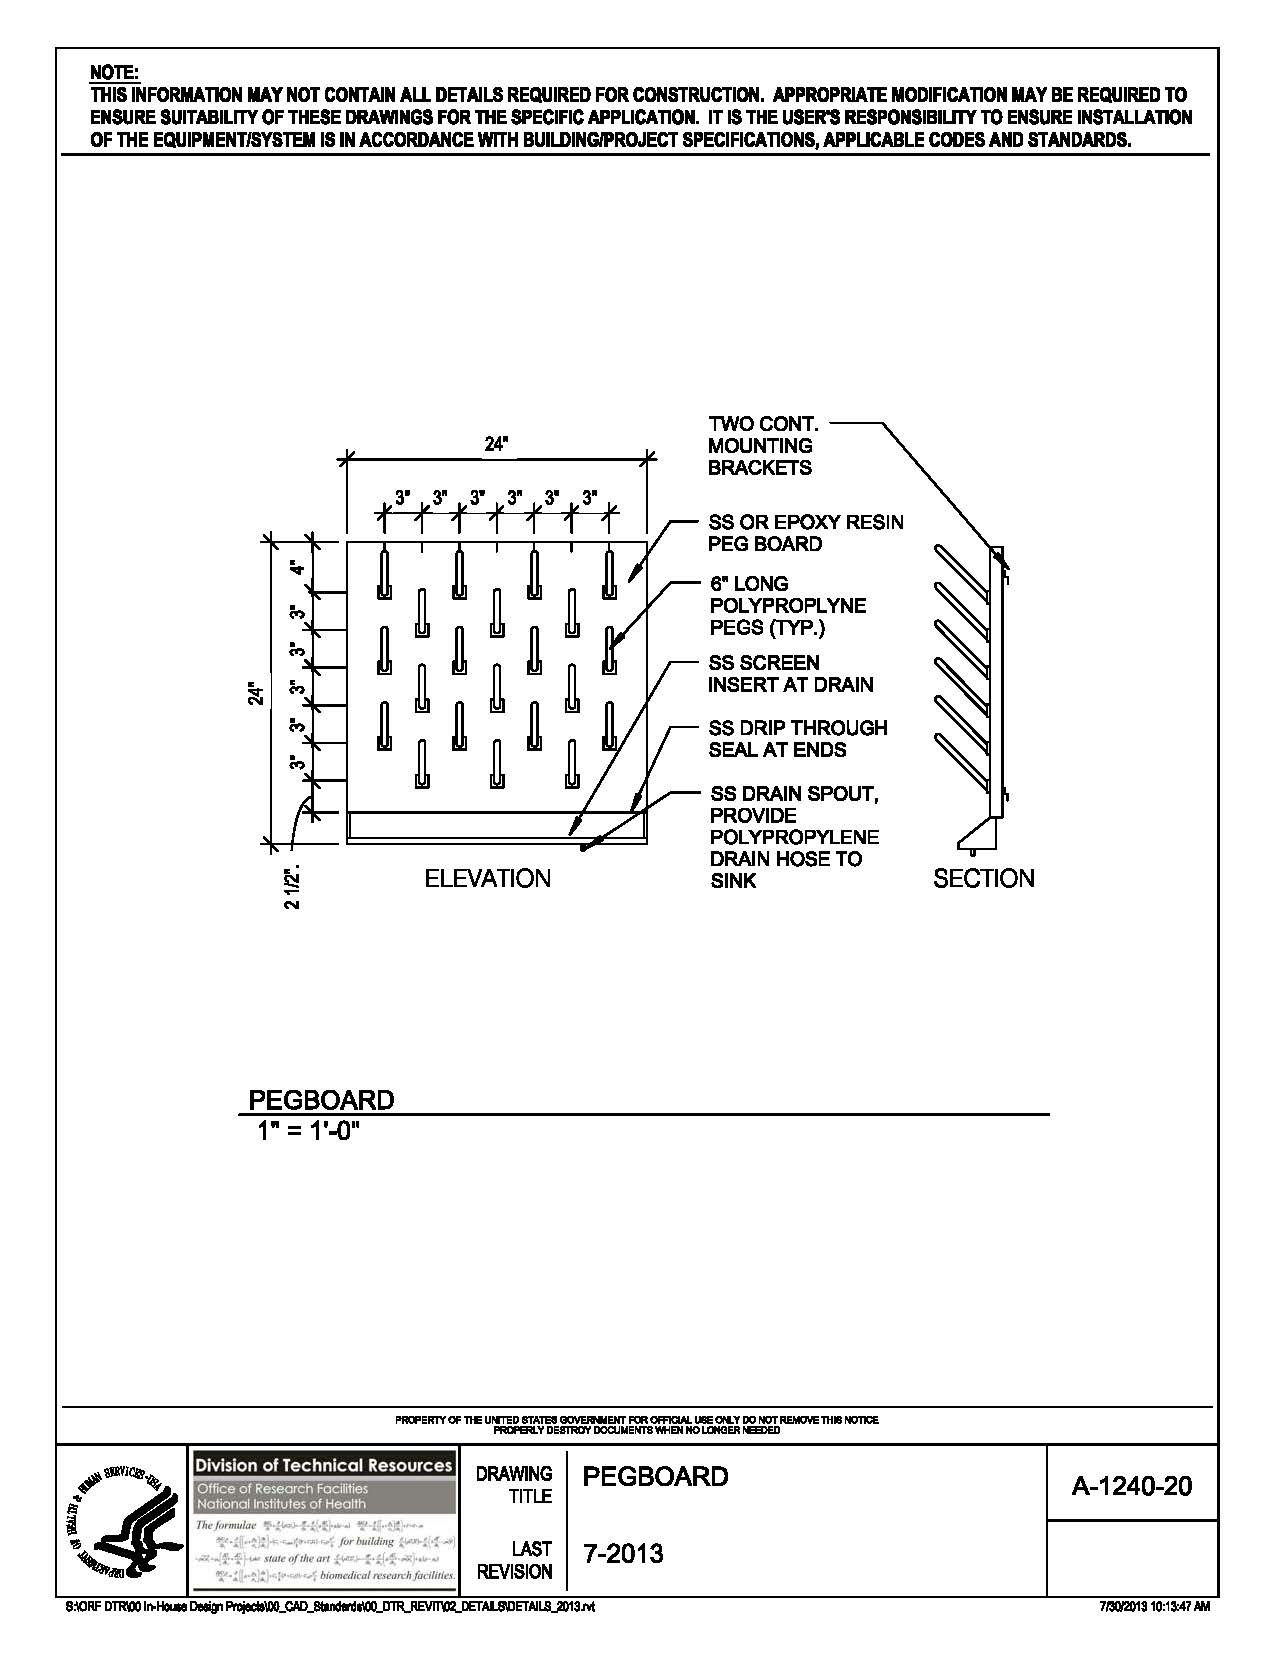 House Specification Sheet 100 House Specification Sheet Wi